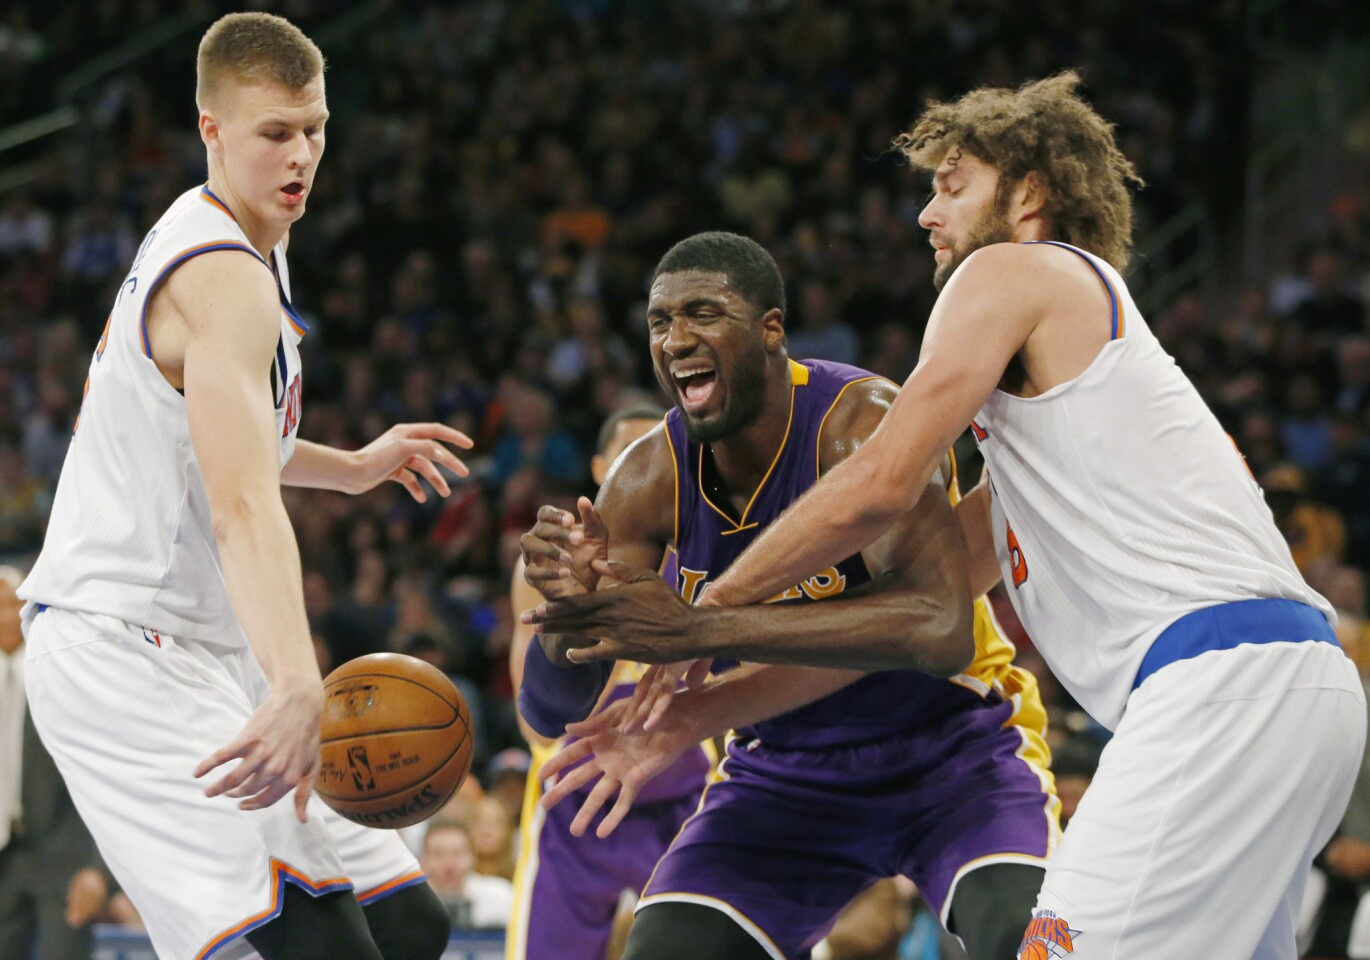 Lakers center Roy Hibbert loses control of the ball as he's defended by Knicks forward Kristaps Porzingis, left, and center Robin Lopez in the second half Sunday.